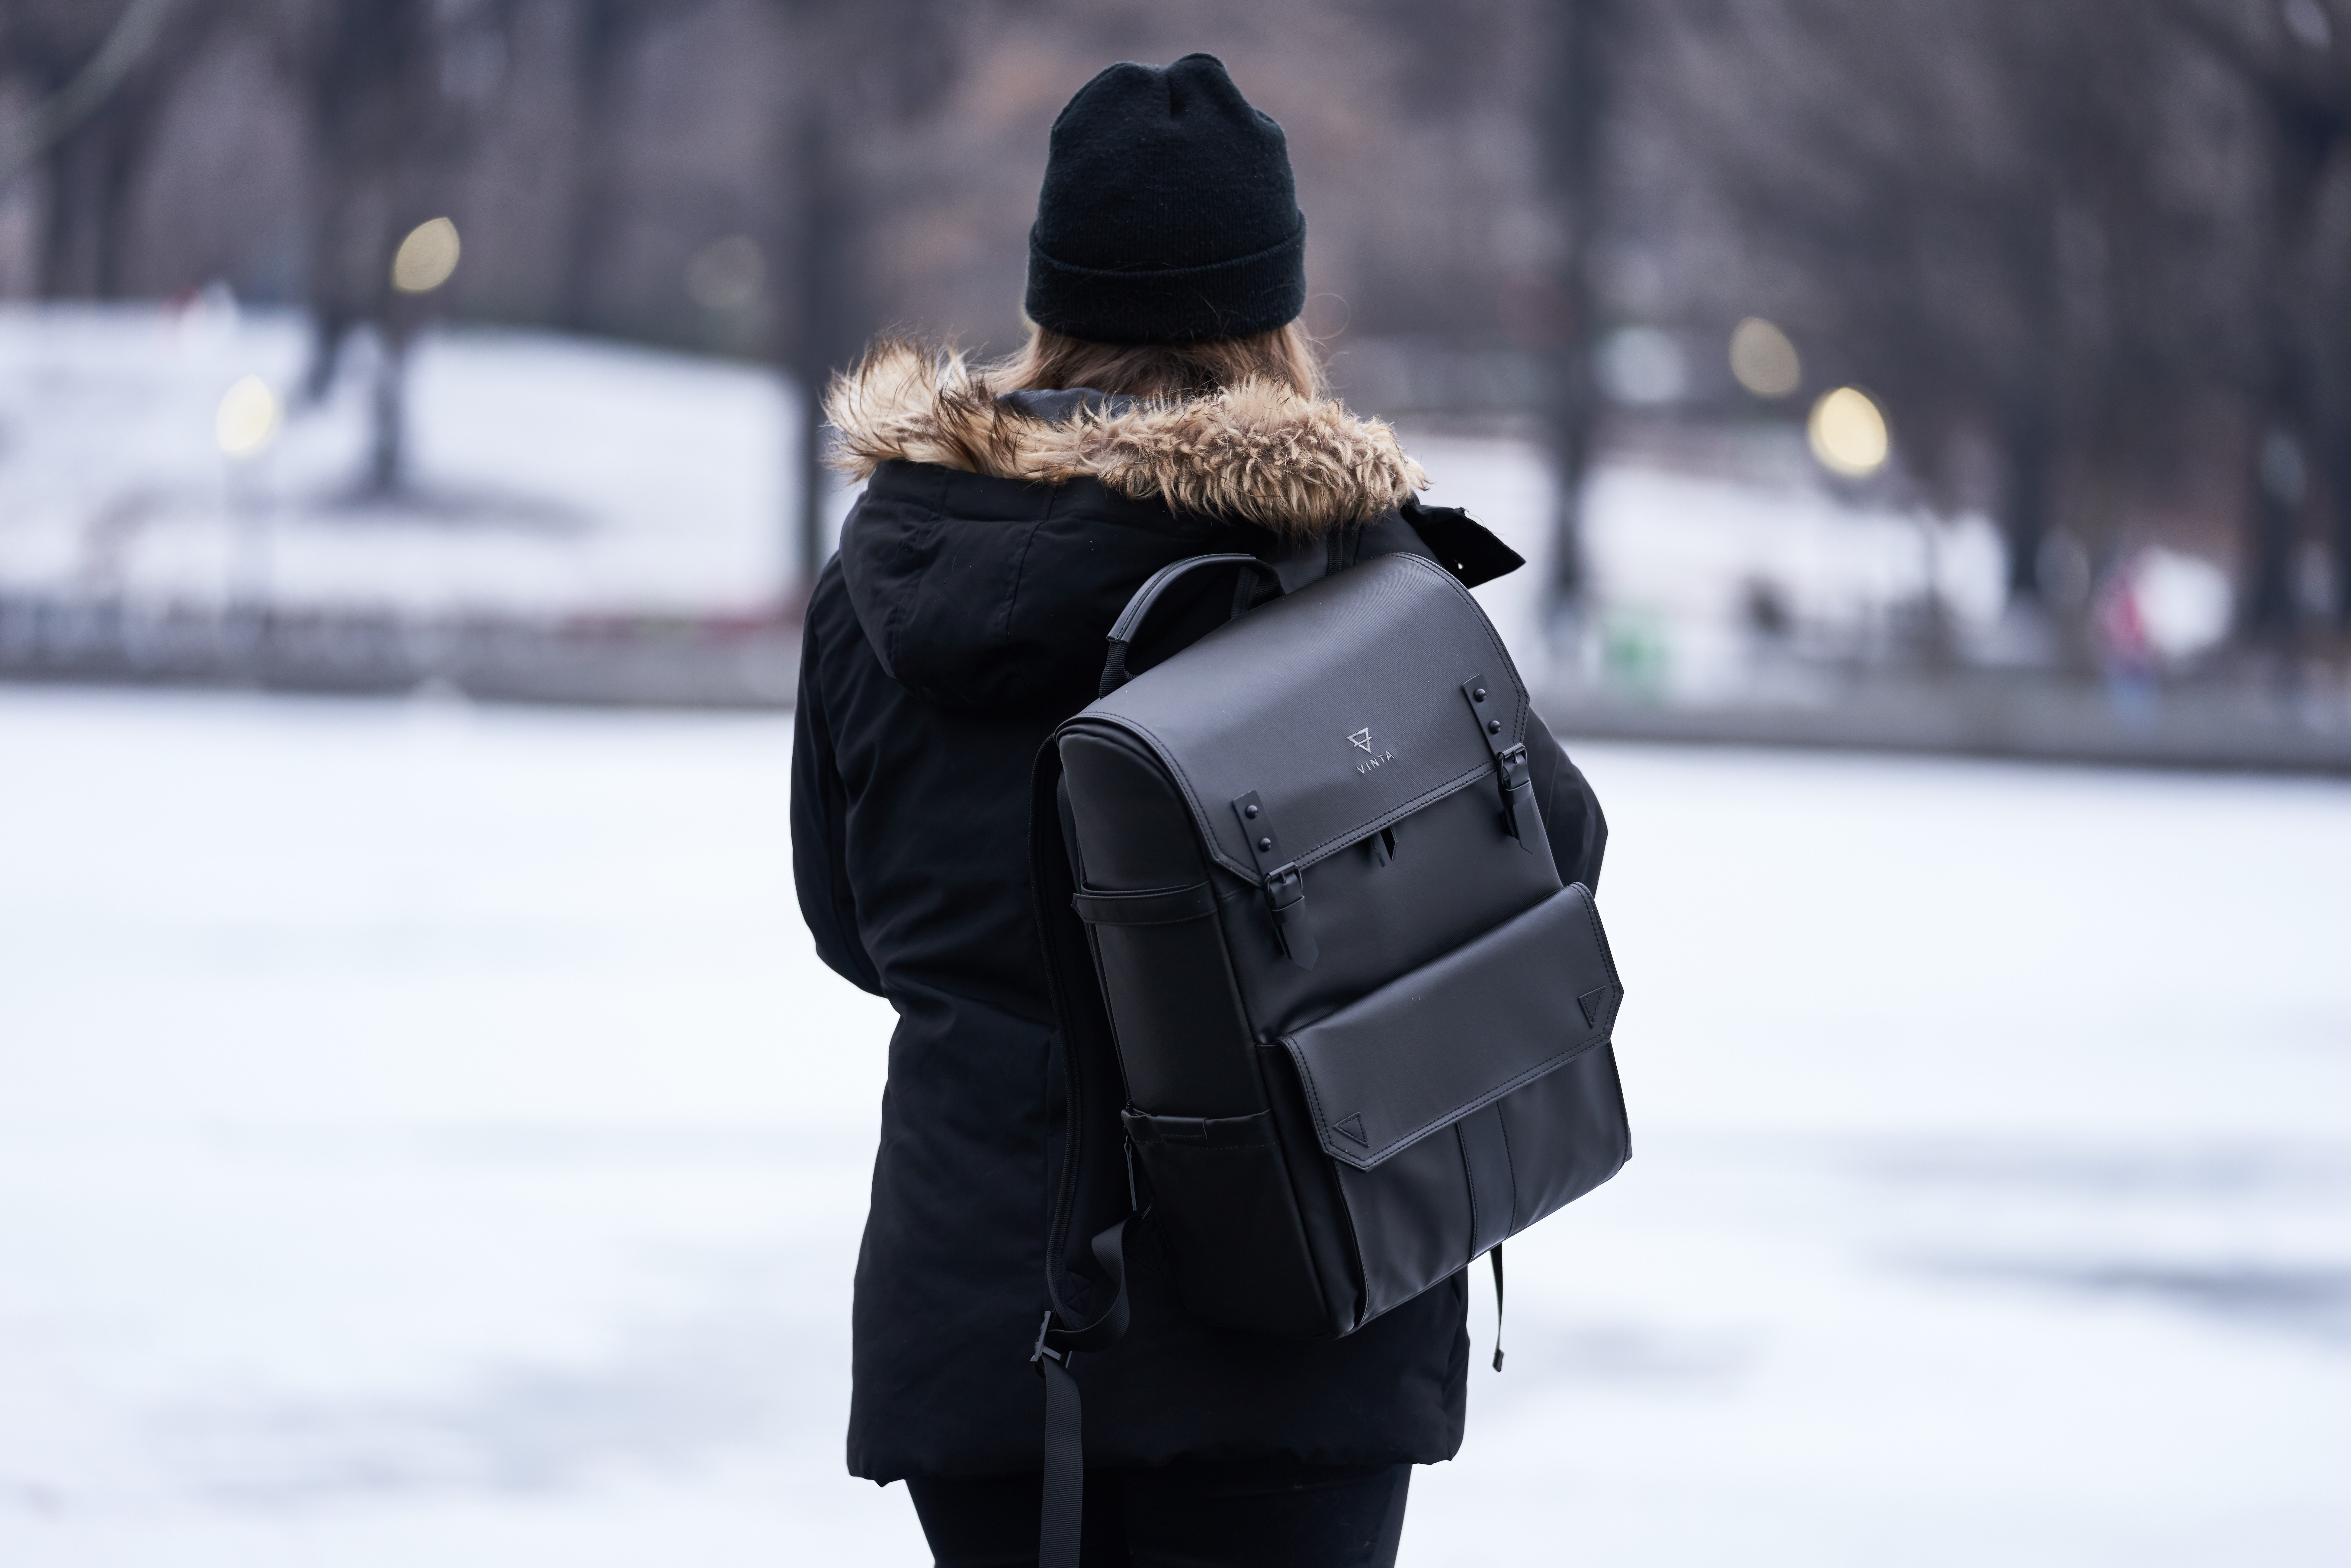 Woman Wearing Parka and Carrying Backpack during Winter, Back view, Nyc, Winter jacket, Winter, HQ Photo